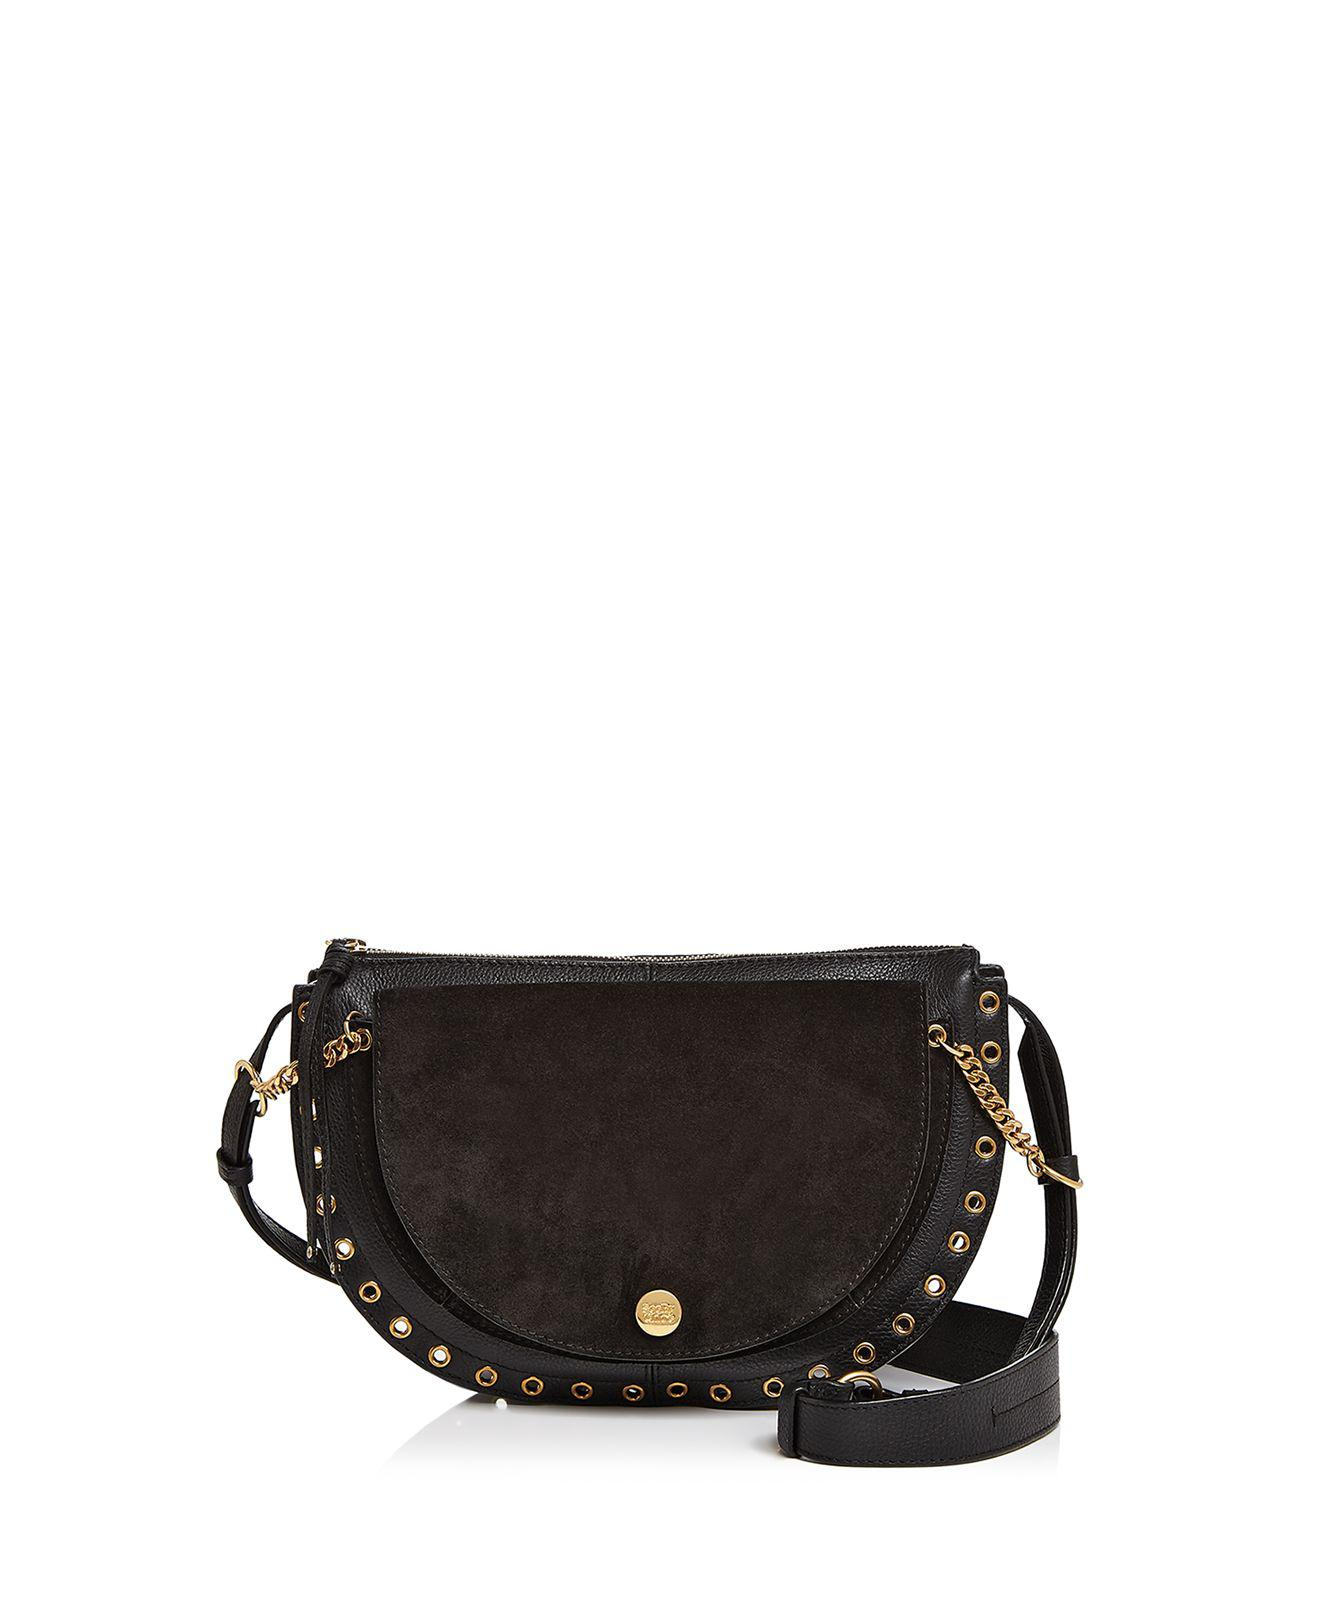 Kriss Small Crossbody Bag in Black Grained Cowskin and Suede See By Chlo Wv7QLK